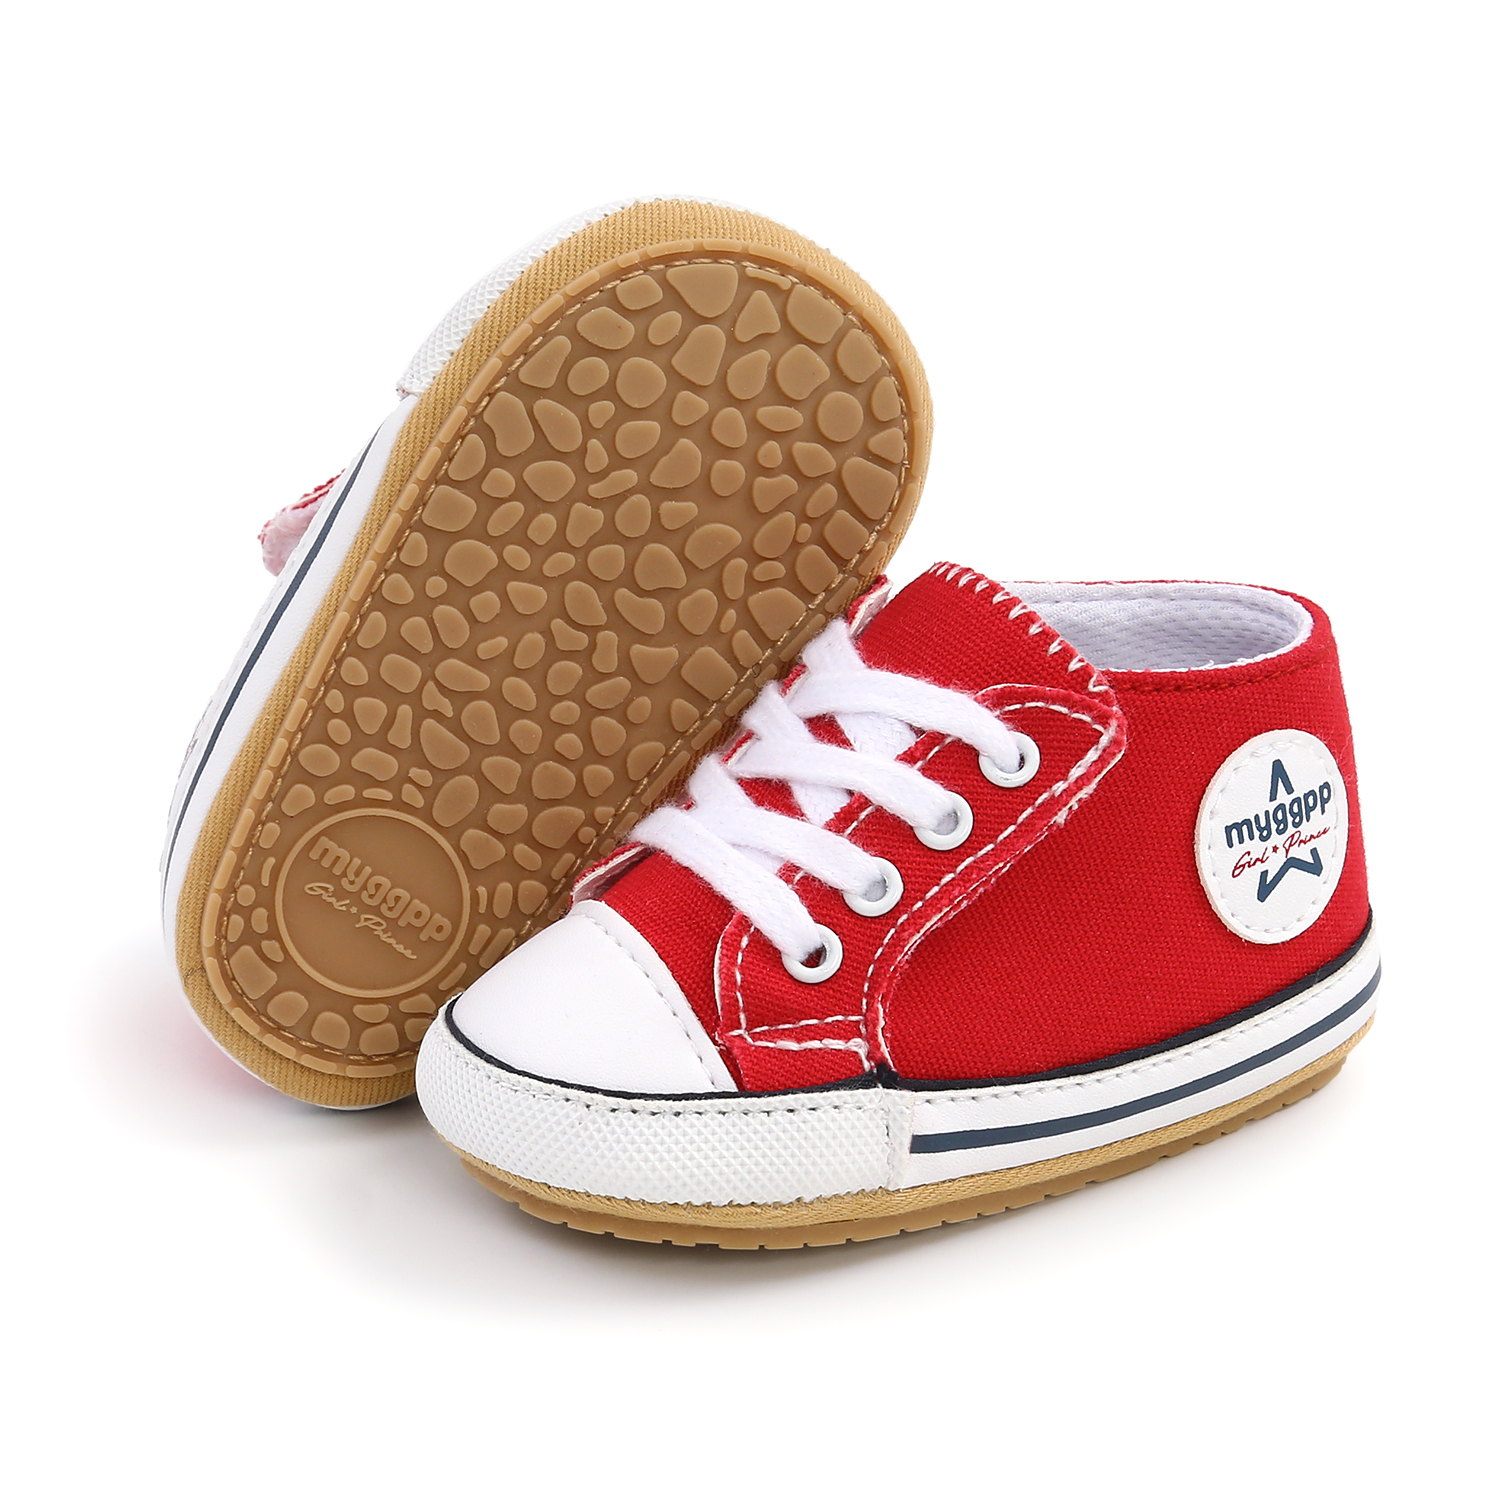 2021 New Classic Baby Canvas Shoes Toddlers Rubber Sole Moccasins Anti-slip Infant First Walkers Boys Girls Newborn Crib Shoes 6